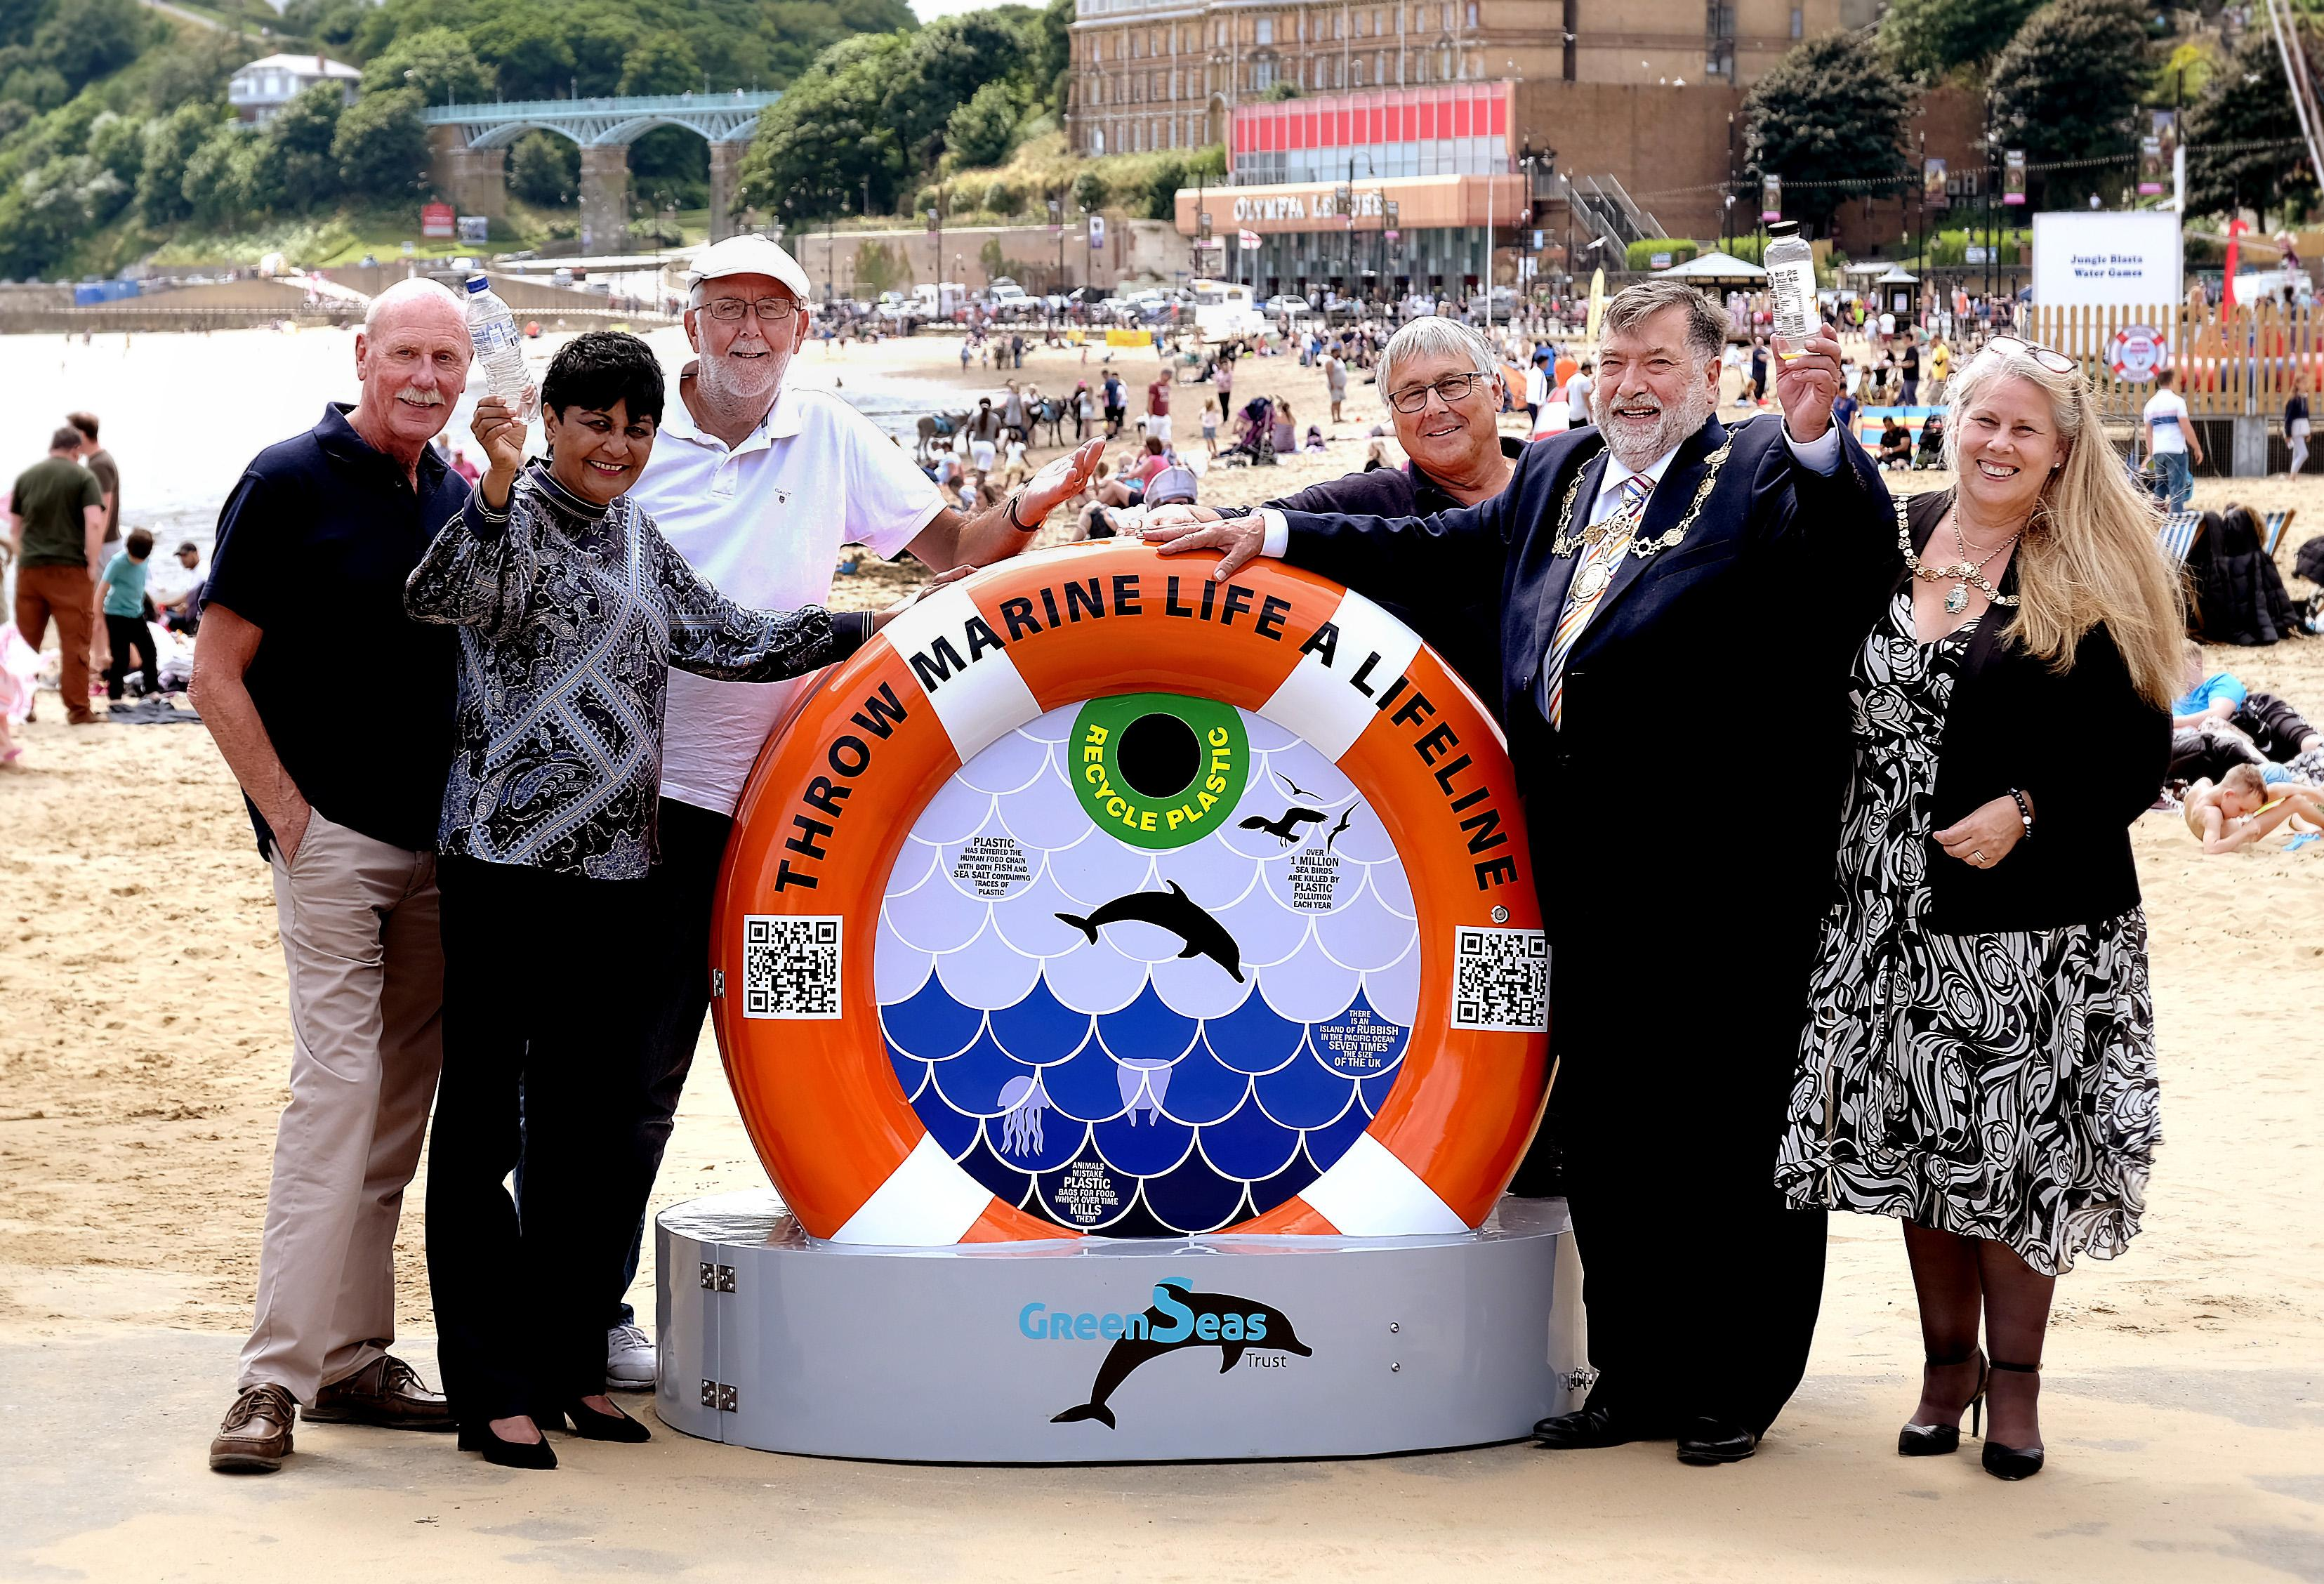 Picture of the launch of the BinForGreenSeas at Scarborough South Bay